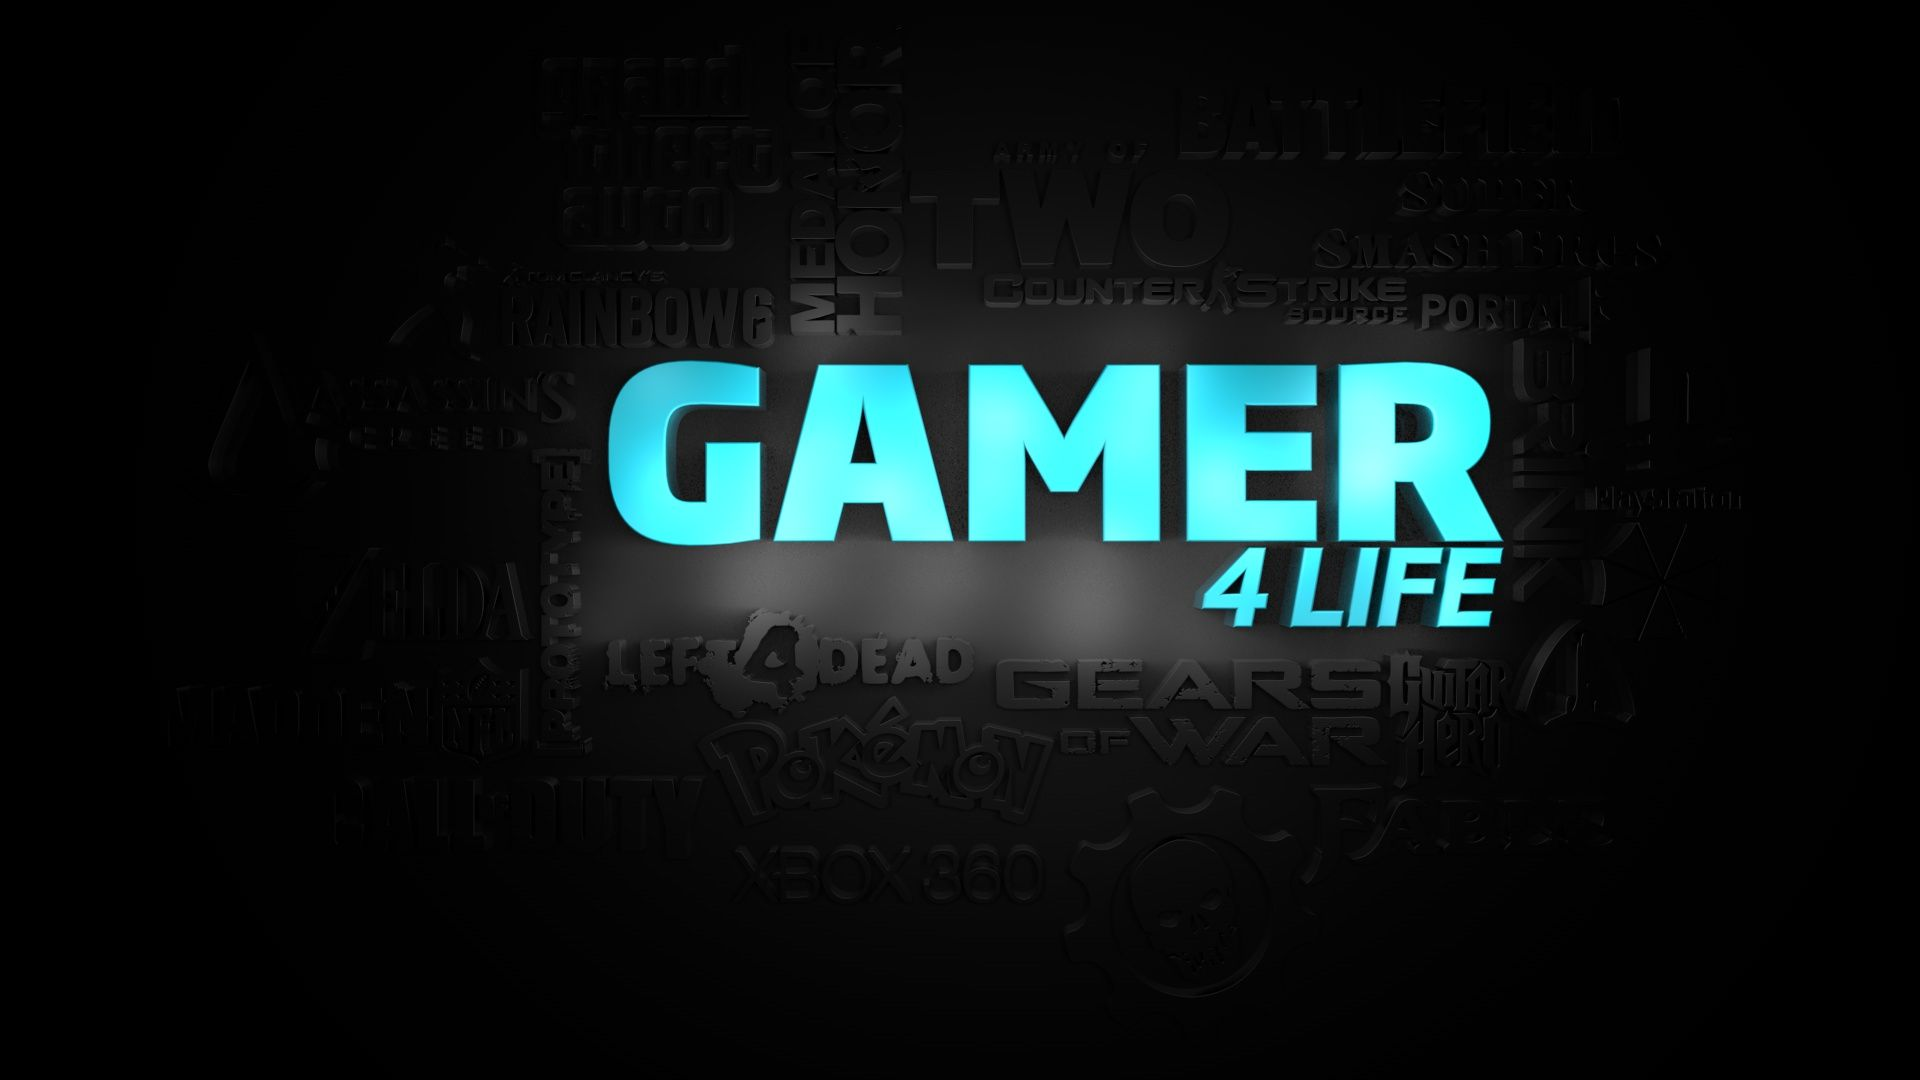 Gamer Wallpapers Find Best Latest For Your PC Desktop Background Mobile Phones